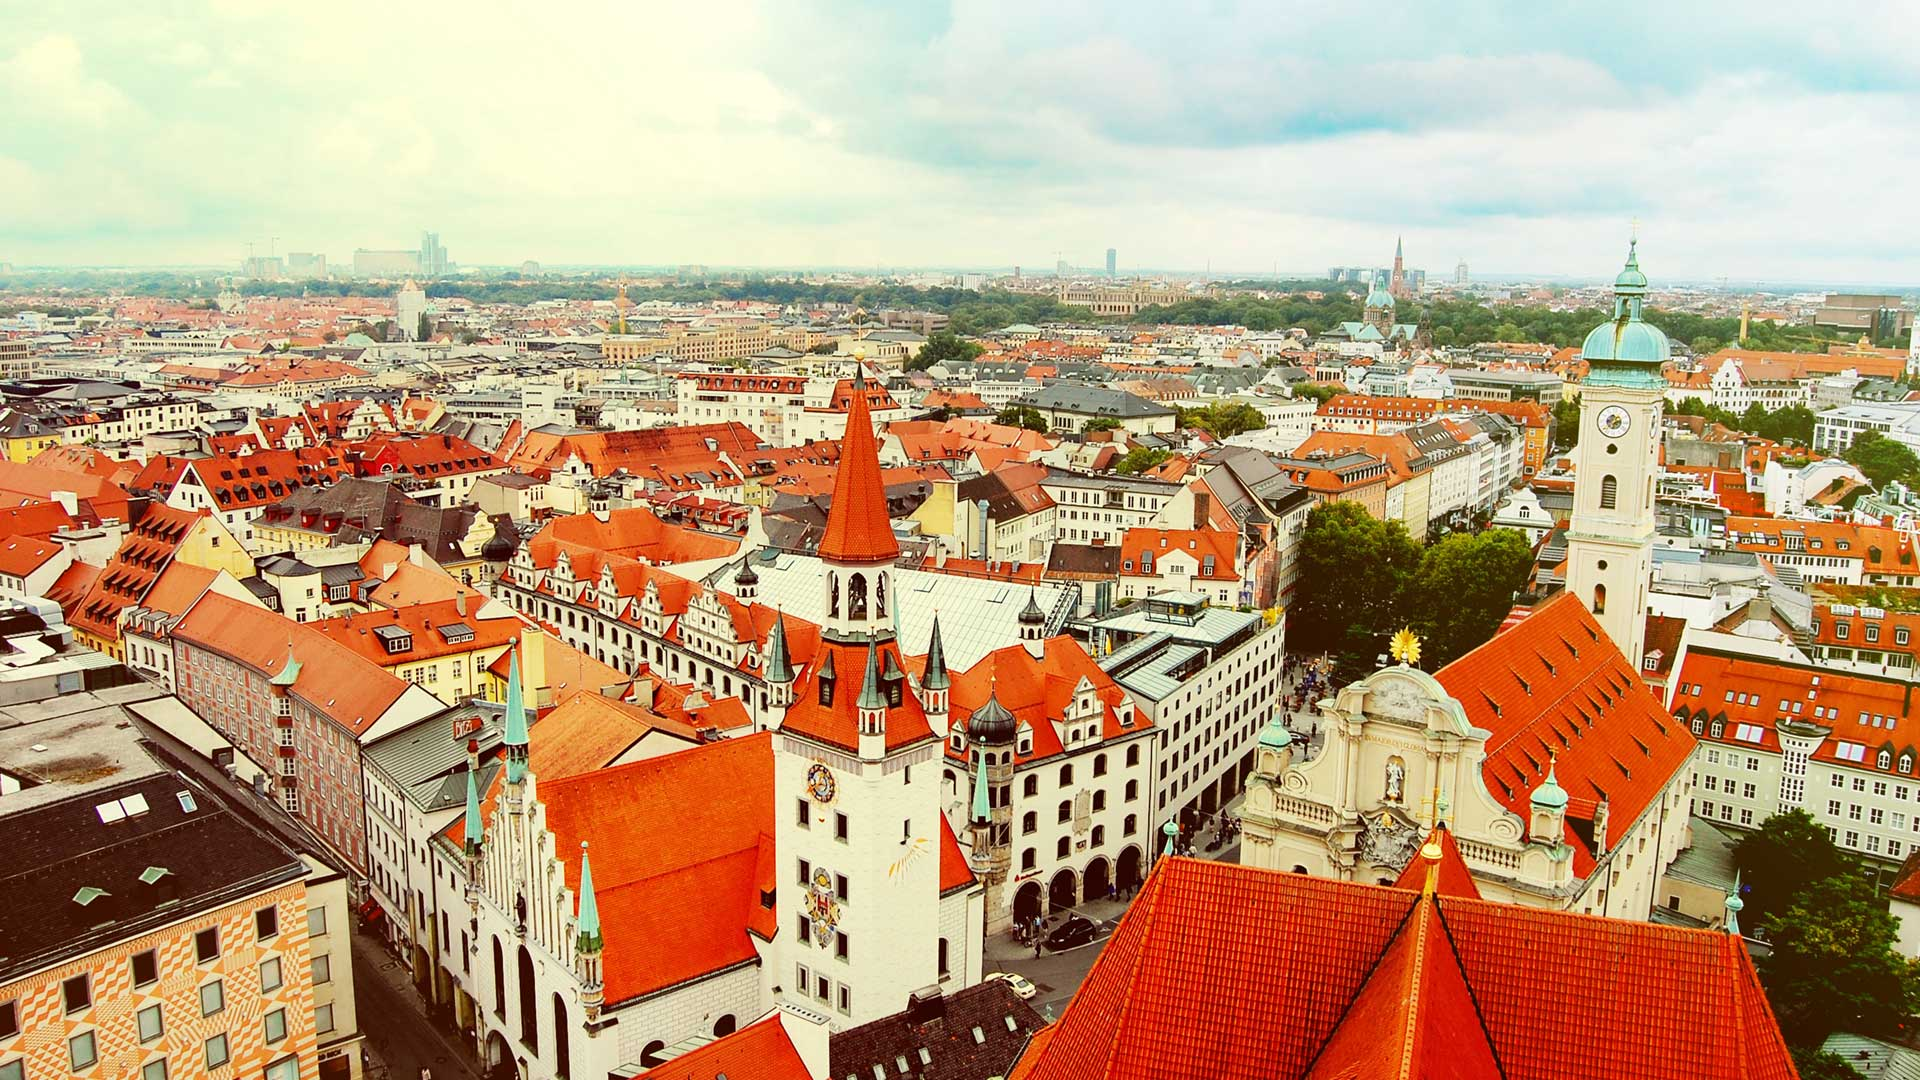 Skyline of Munich from high vantage point, with white buildings with red roofs and a cloudy blue sky